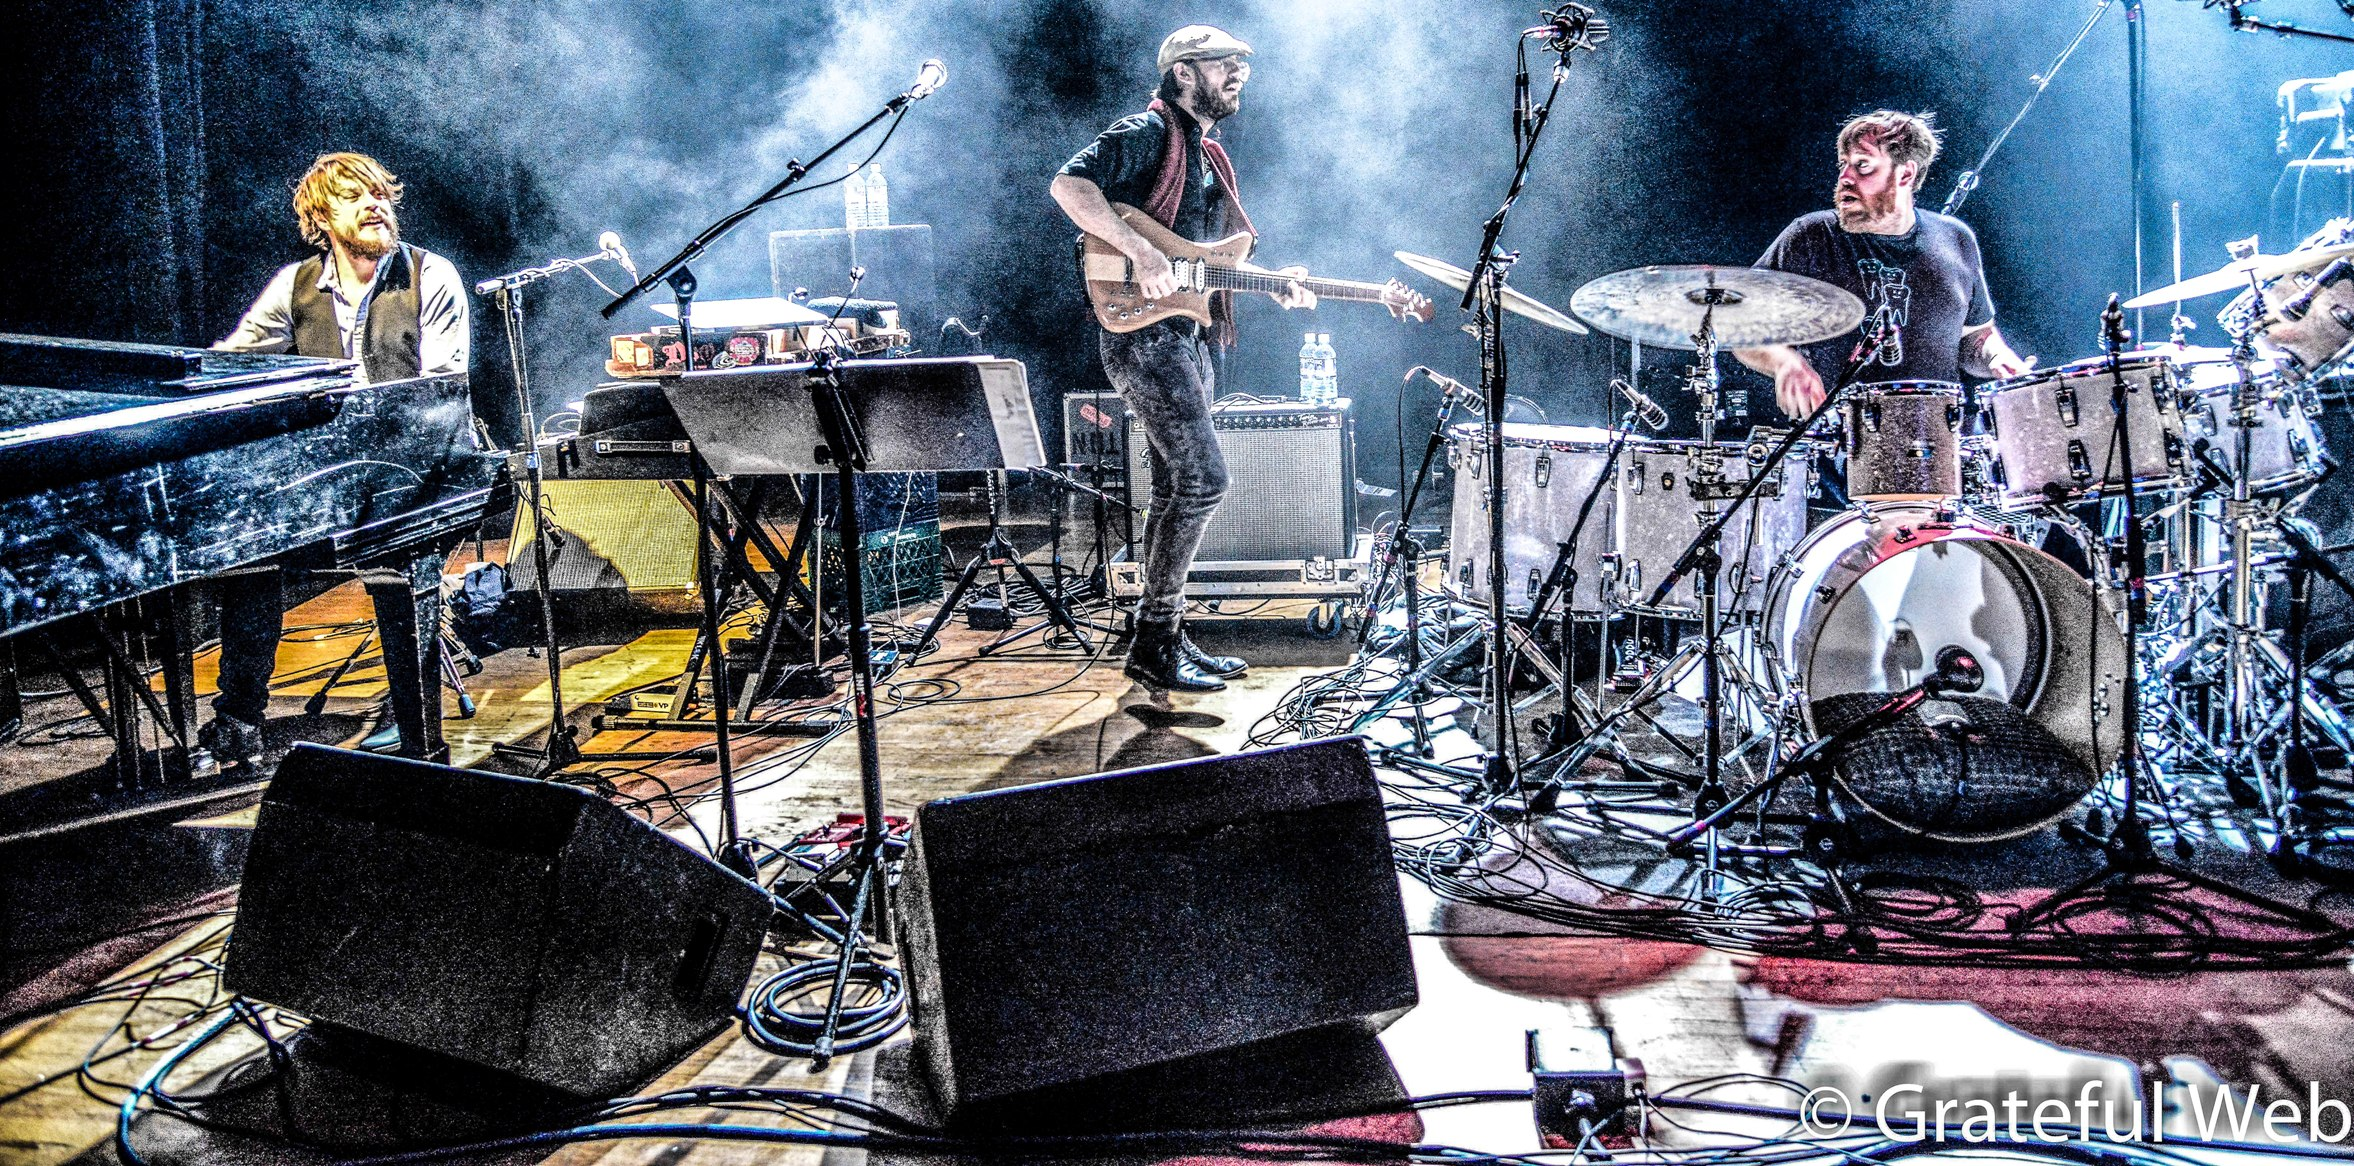 Joe Russo's Almost Dead | 2/16/15 | Review